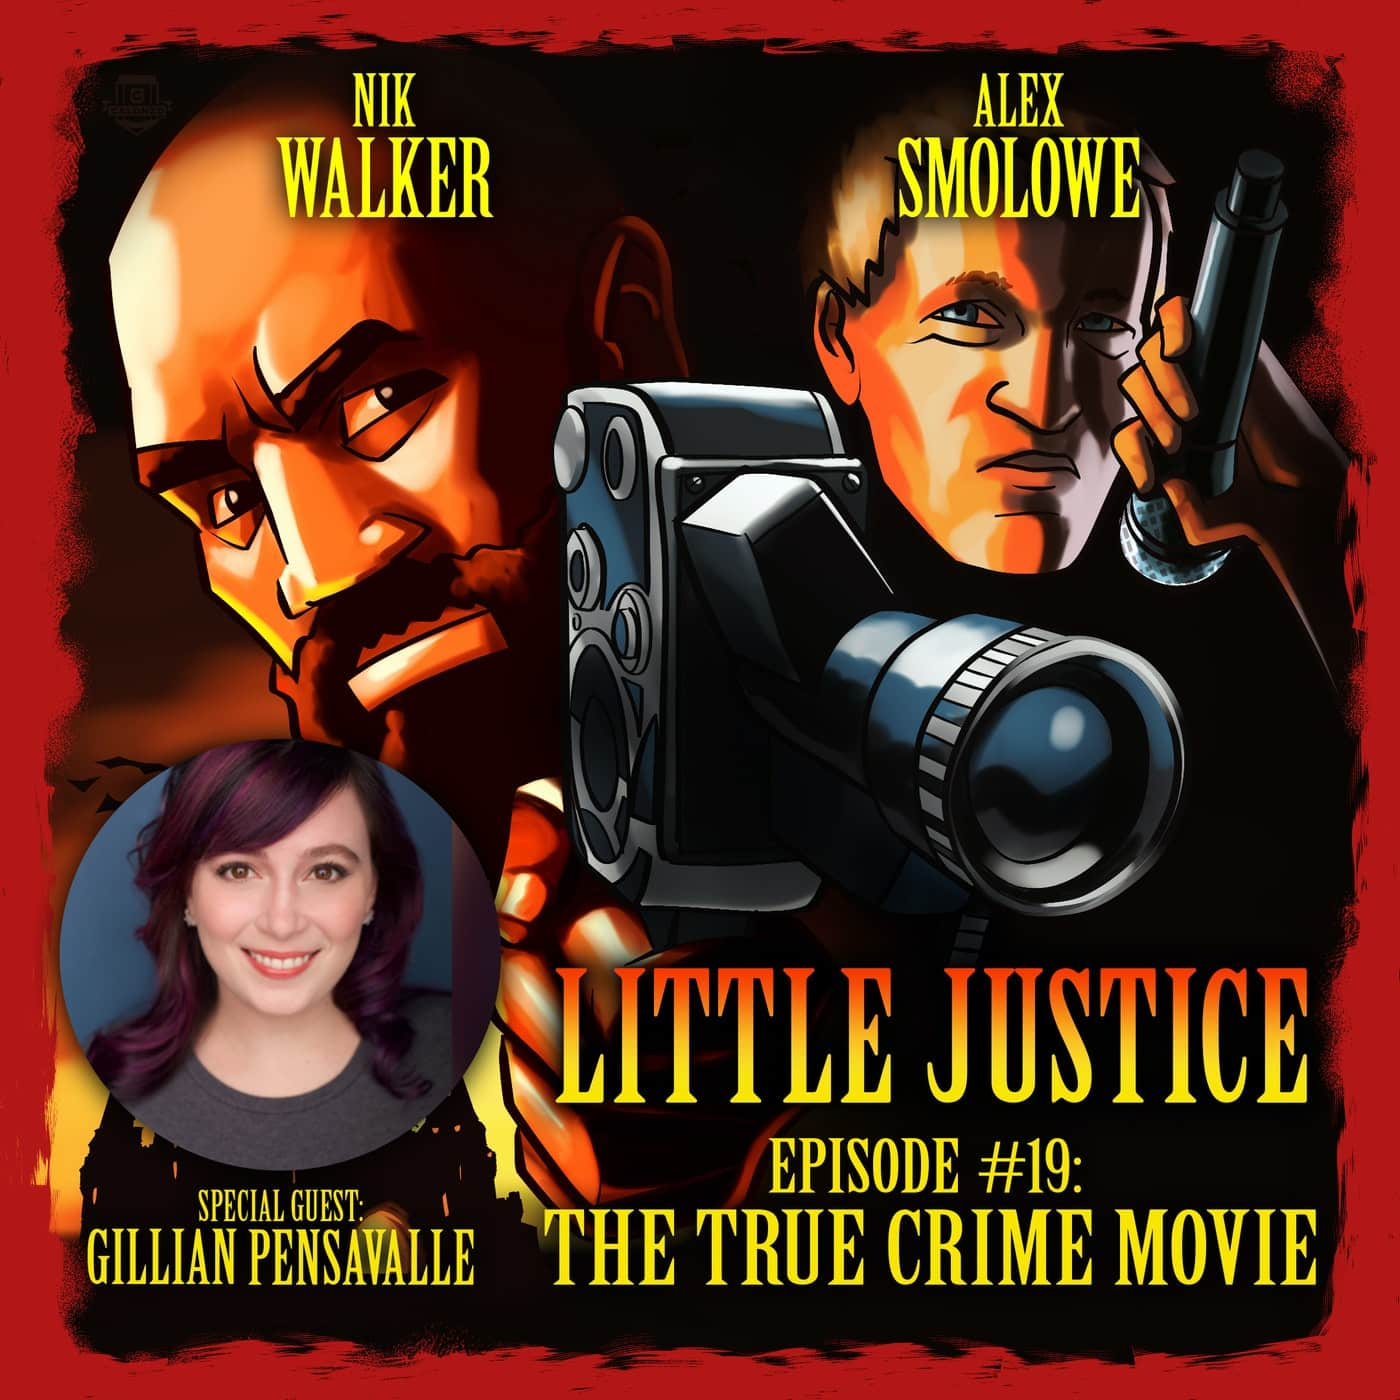 #19 - The True Crime Movie, Pt. 1 with Gillian Pensavalle